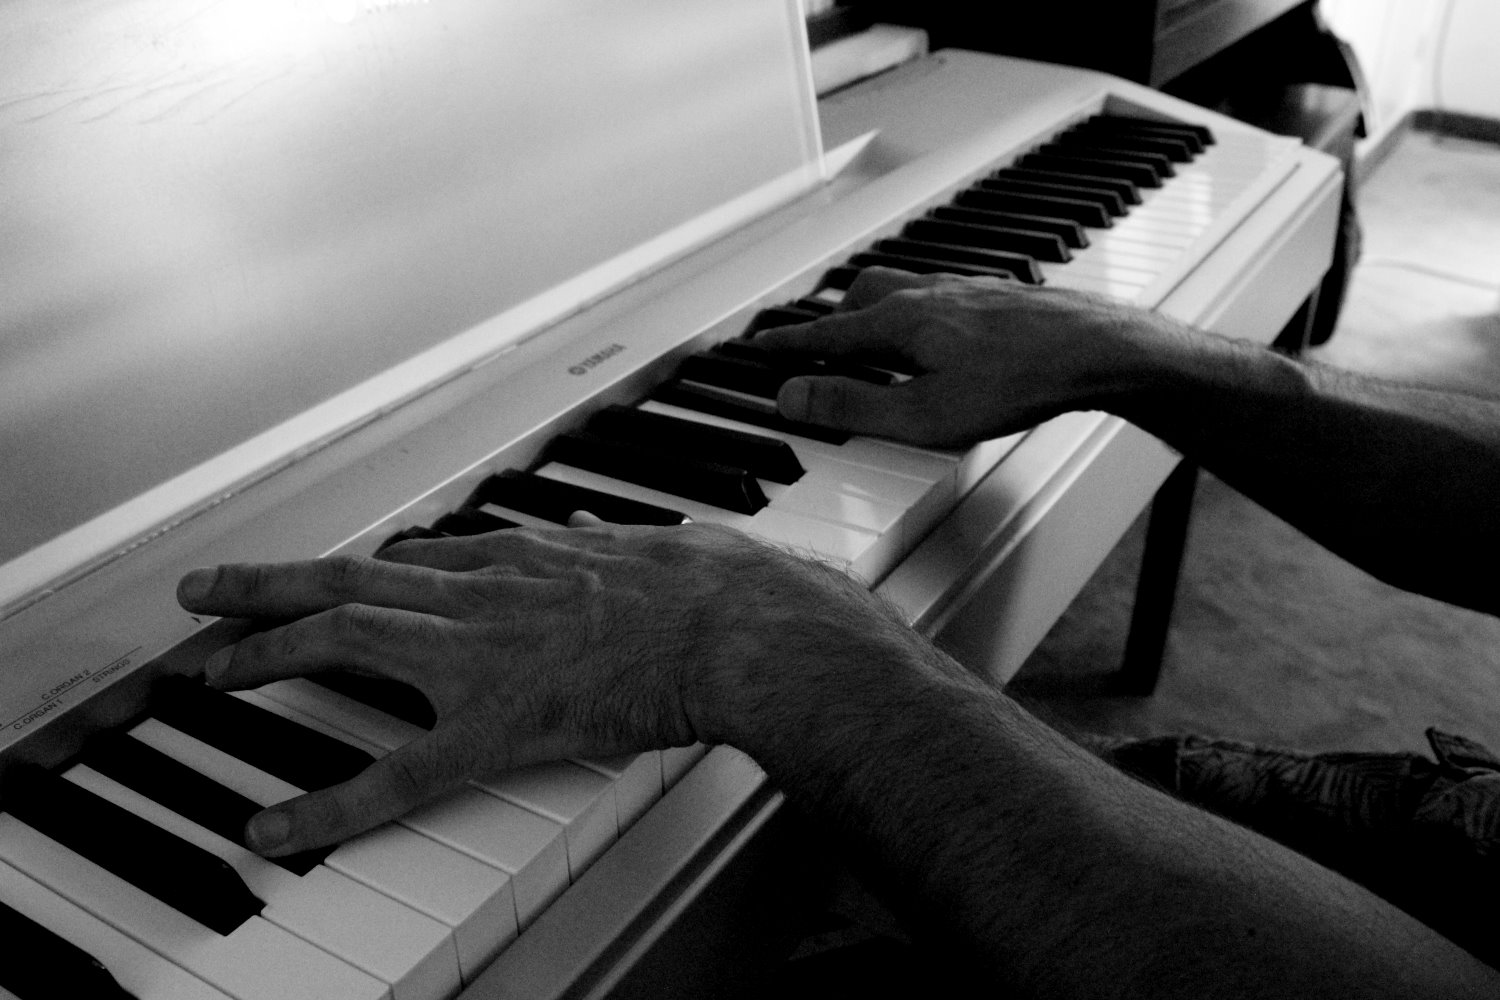 Hands On Piano - HighSoniX Productions © Copyright 2019